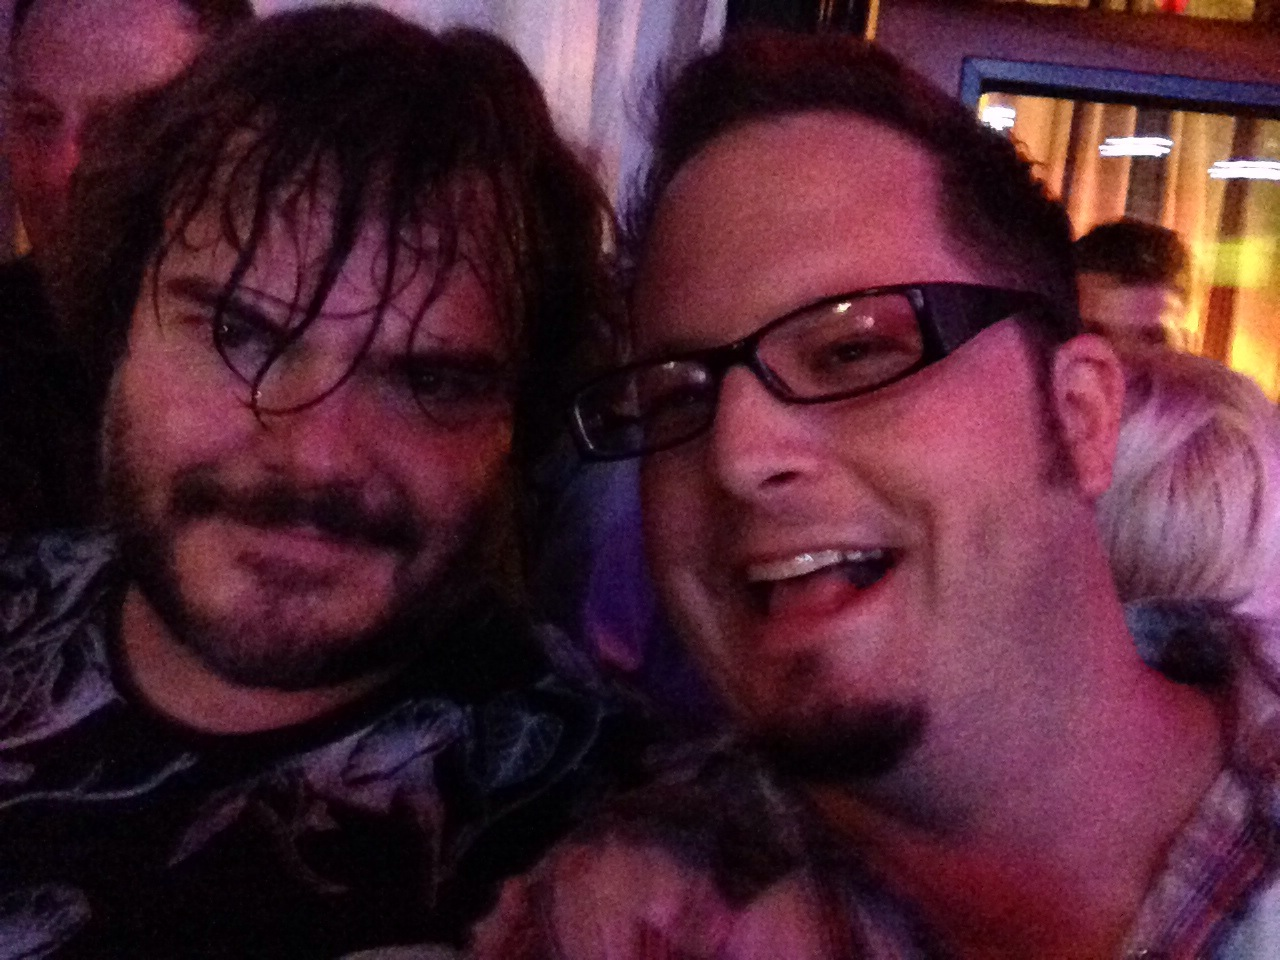 After party with Jack Black.